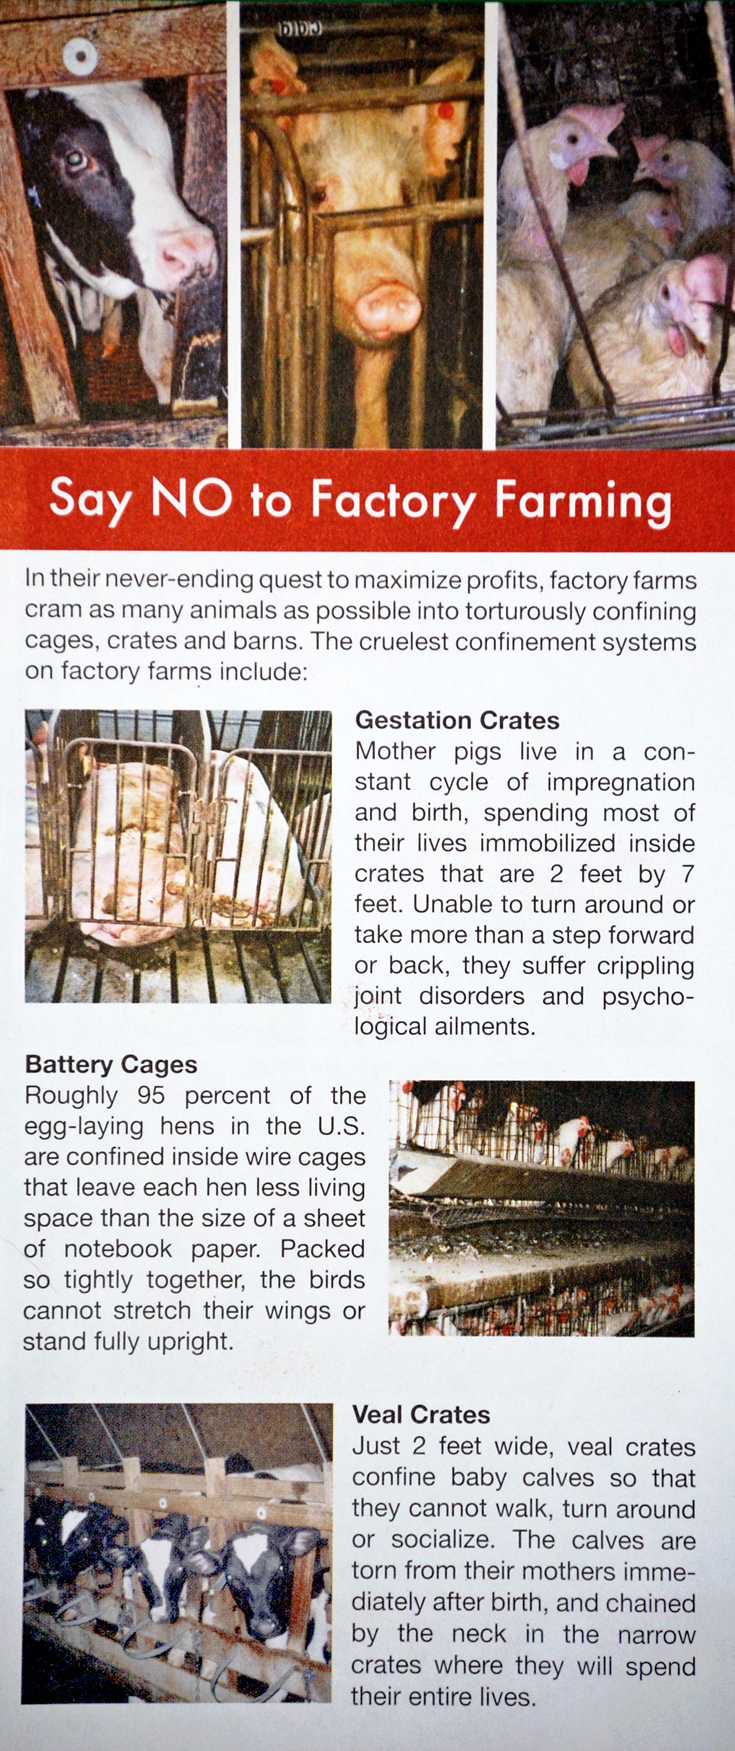 Say NO to Factory Farming Leaflet